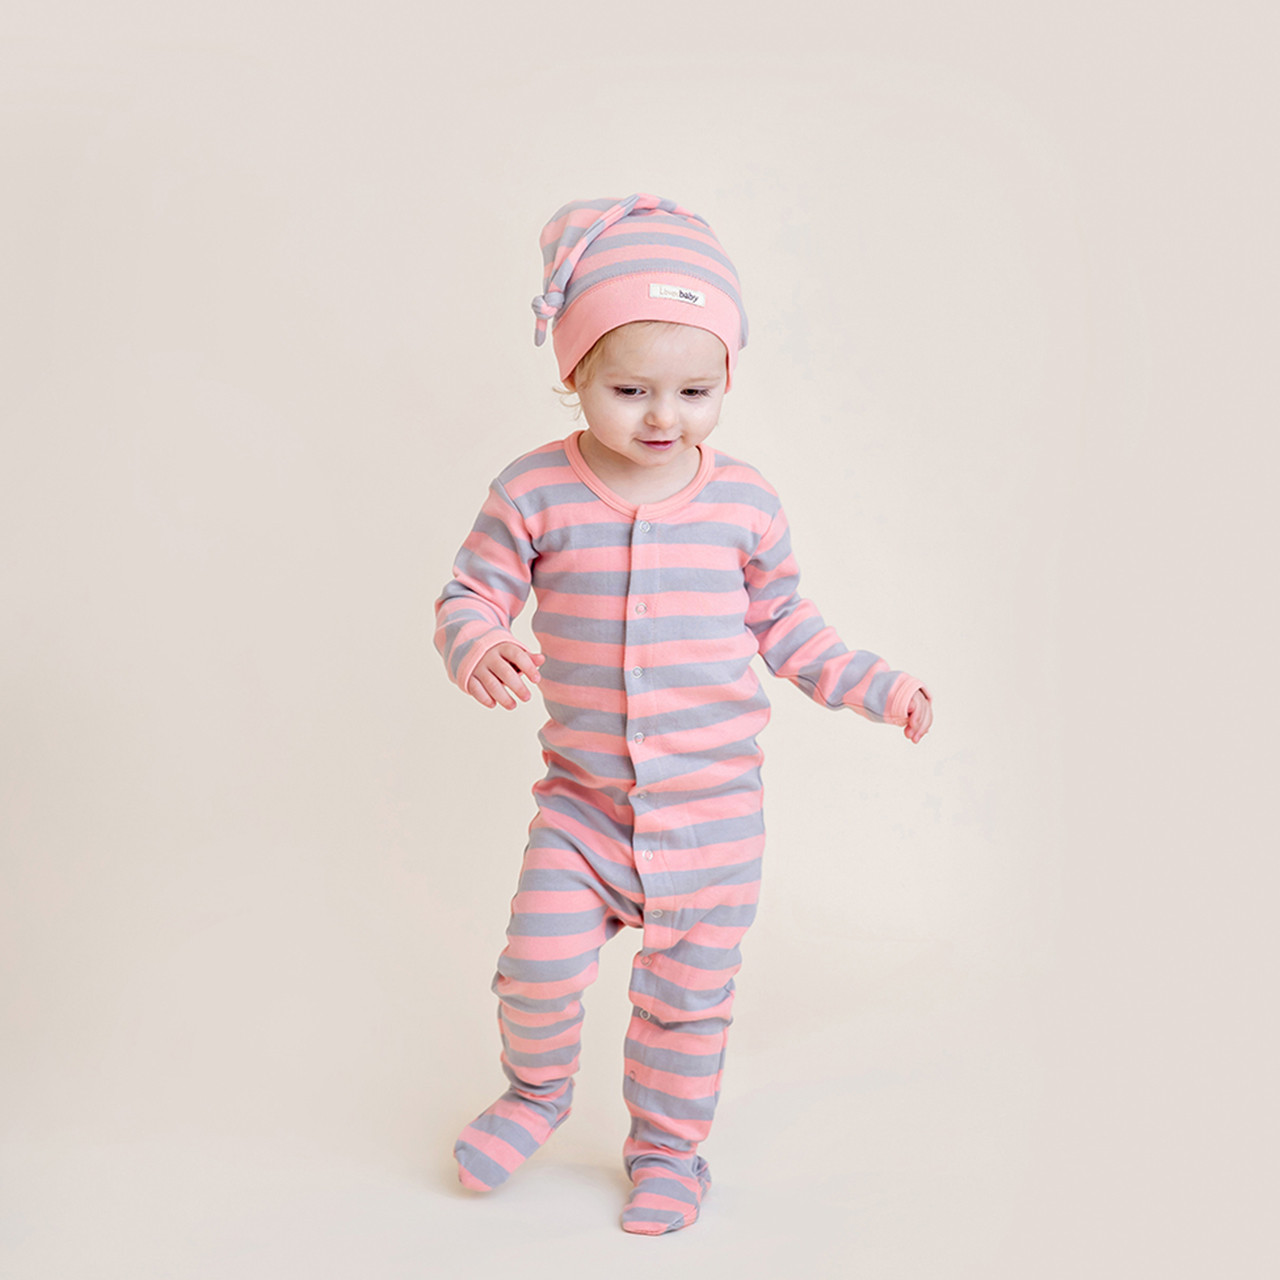 Organic Banded Top-Knot Hat in Coral/Light Gray Stripe, Lifestyle